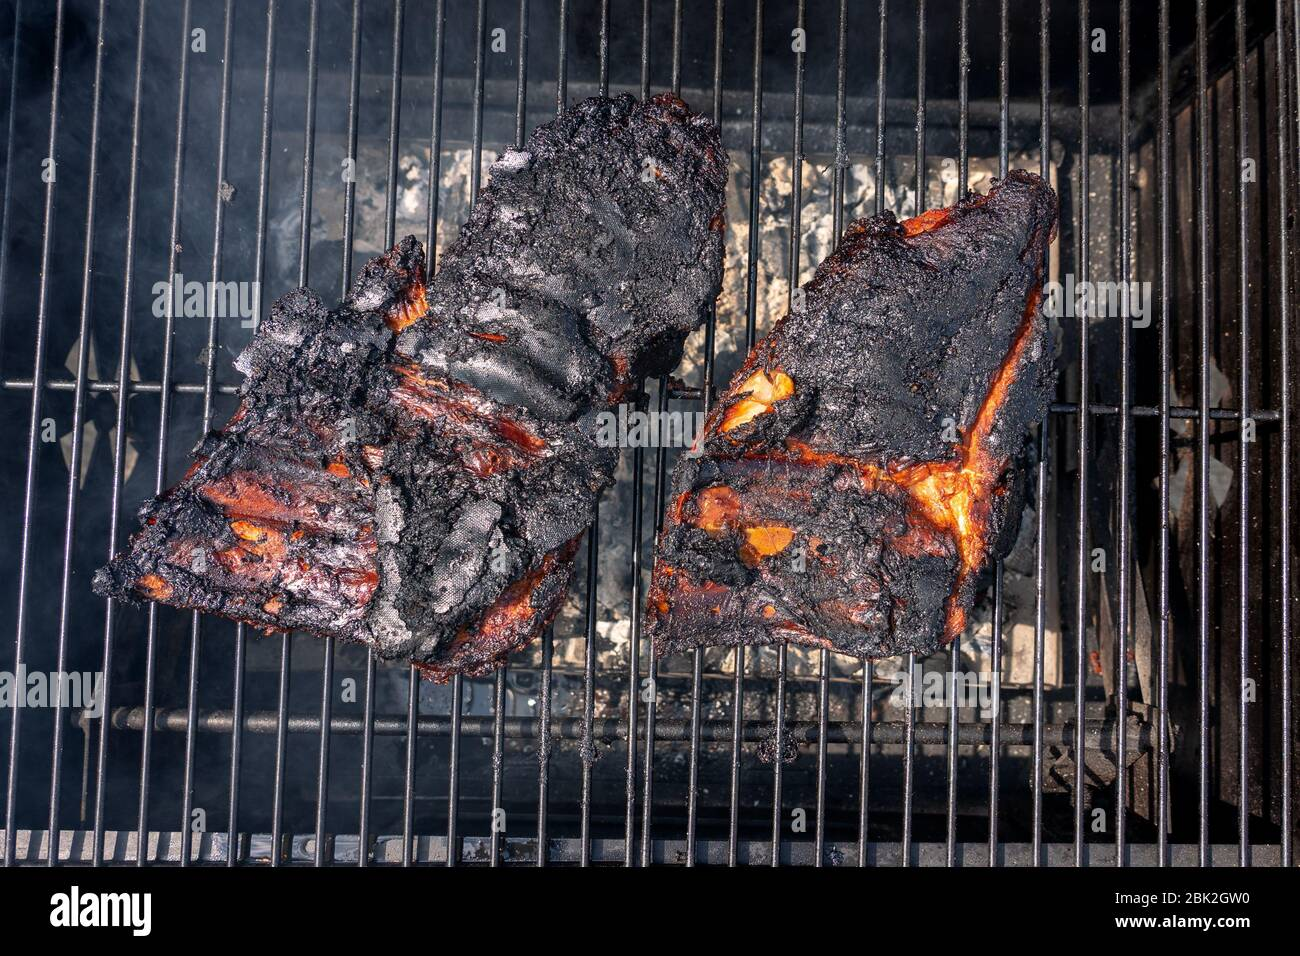 Overcooked Ruined Black Bbq Ribs On The Charcoal Grill Stock Photo Alamy